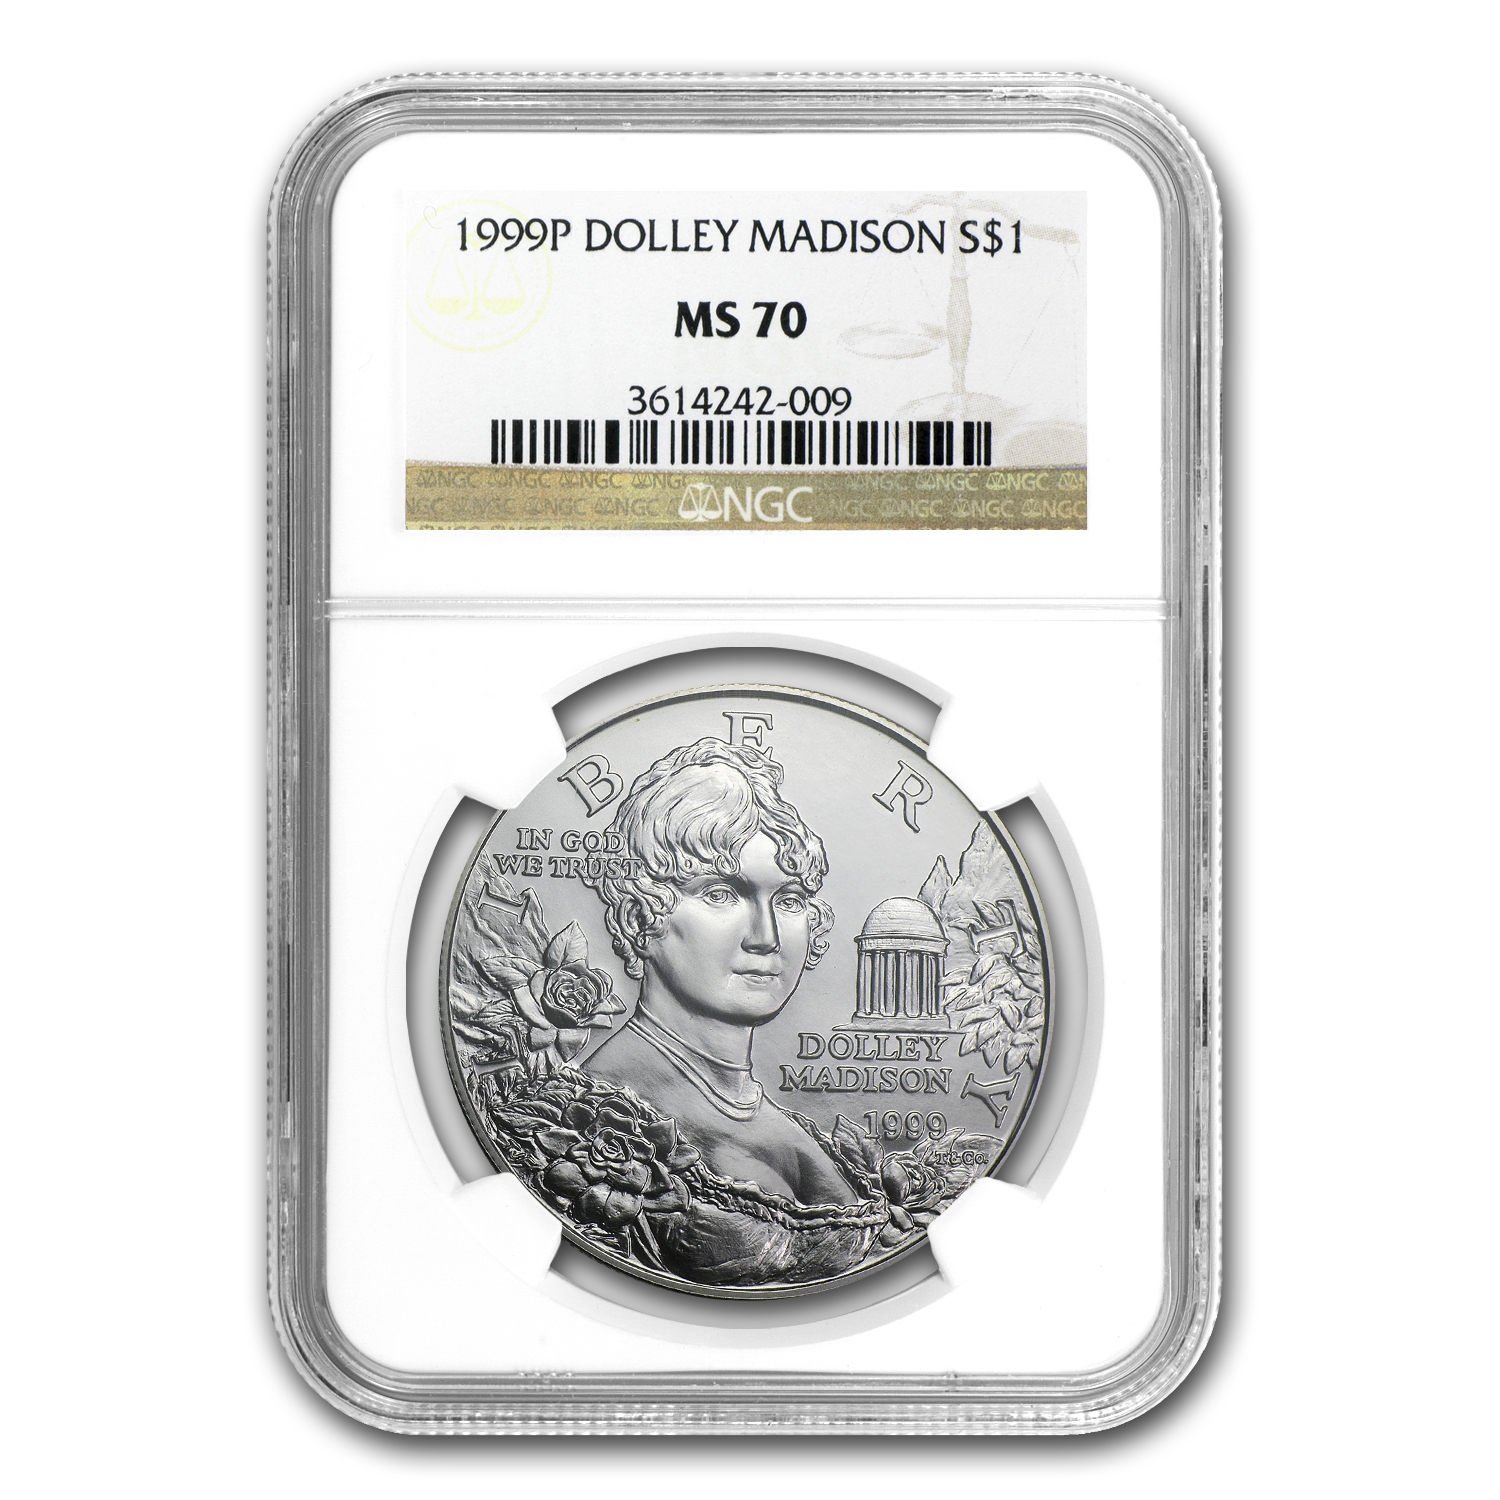 1999-P Dolley Madison $1 Silver Commemorative MS-70 NGC